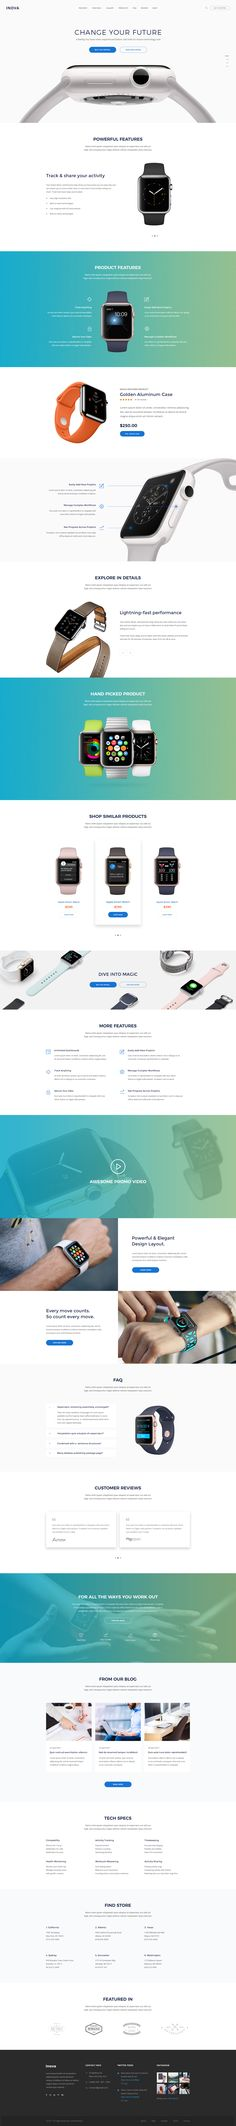 Inova - Product, SaaS, App, Startup, Marketing Landing Page #app #app landing #clean • Download ➝ https://themeforest.net/item/inova-product-saas-app-startup-marketing-landing-page/19486443?ref=pxcr